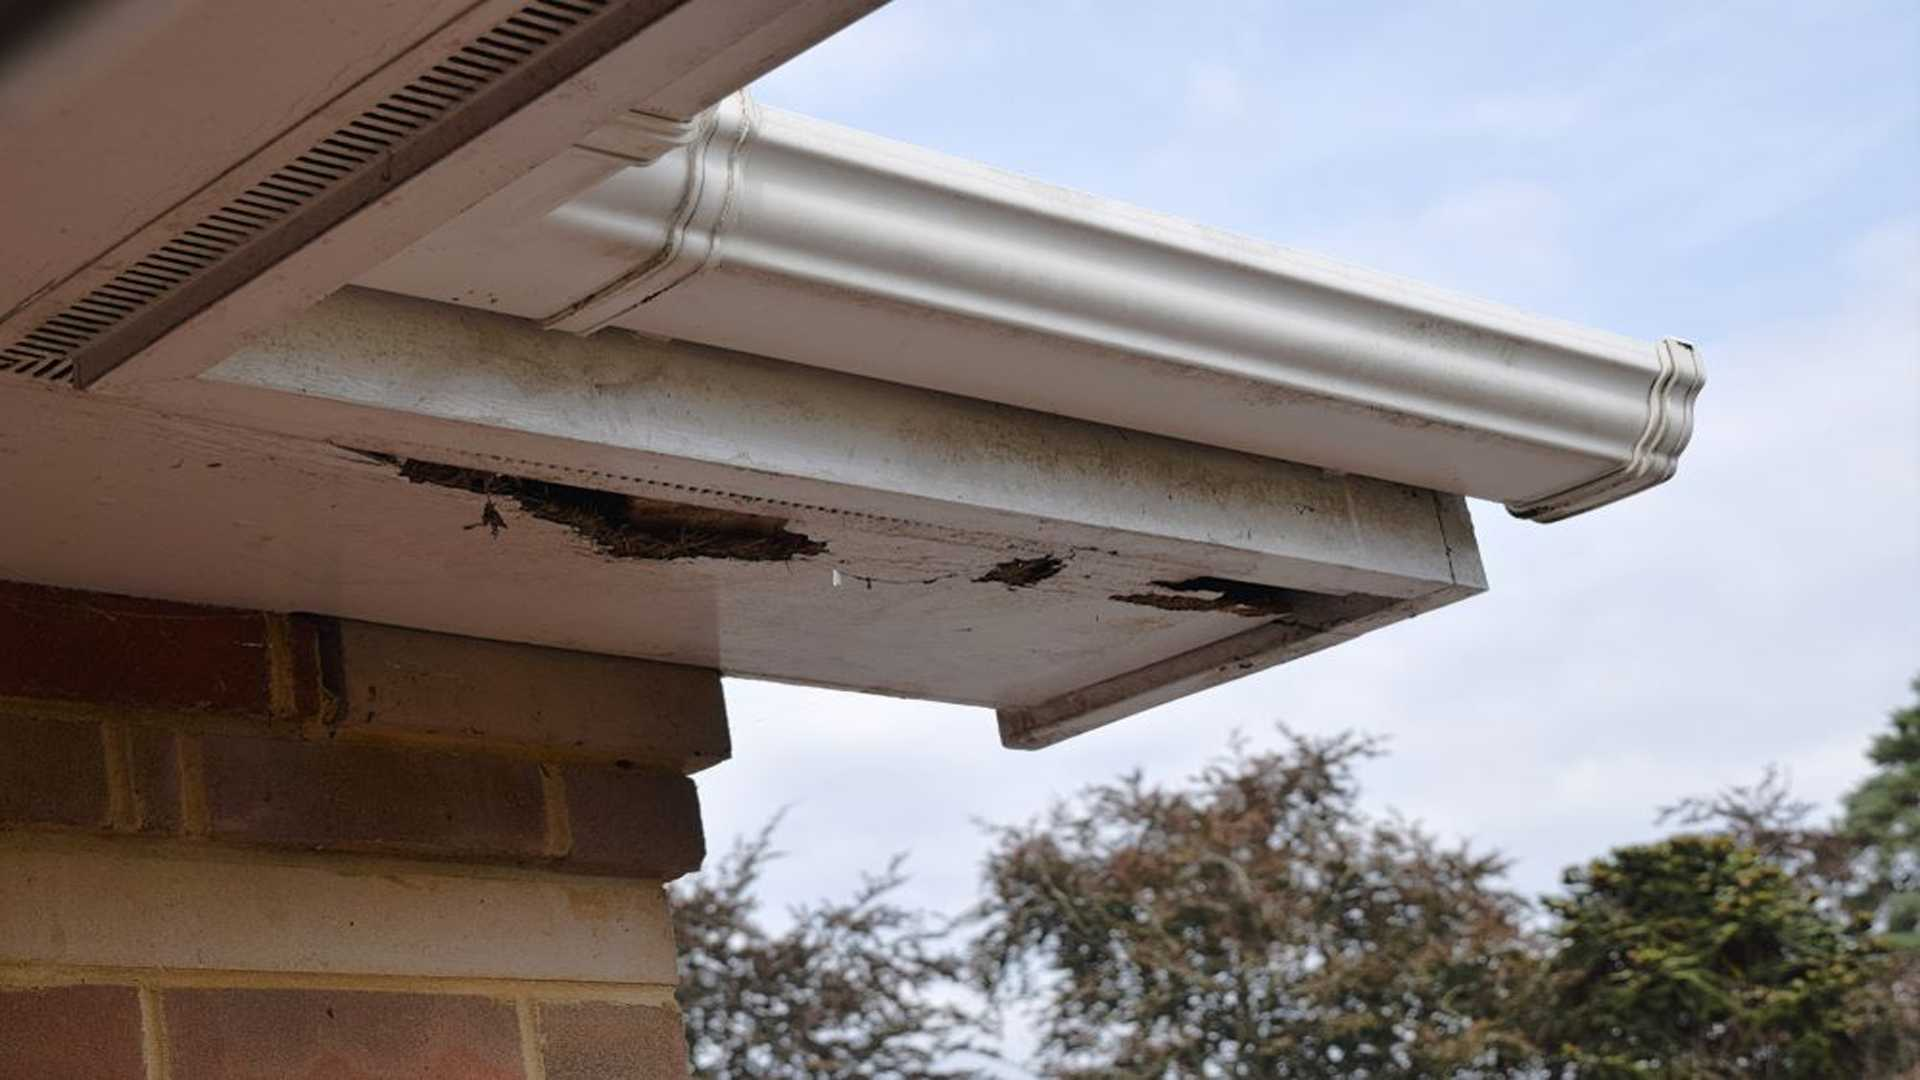 Rotten Wood On Roof Near Gutter Wood Rot Repair Gutter Solutions and Home Improvements Pensacola FL 850 776 1782